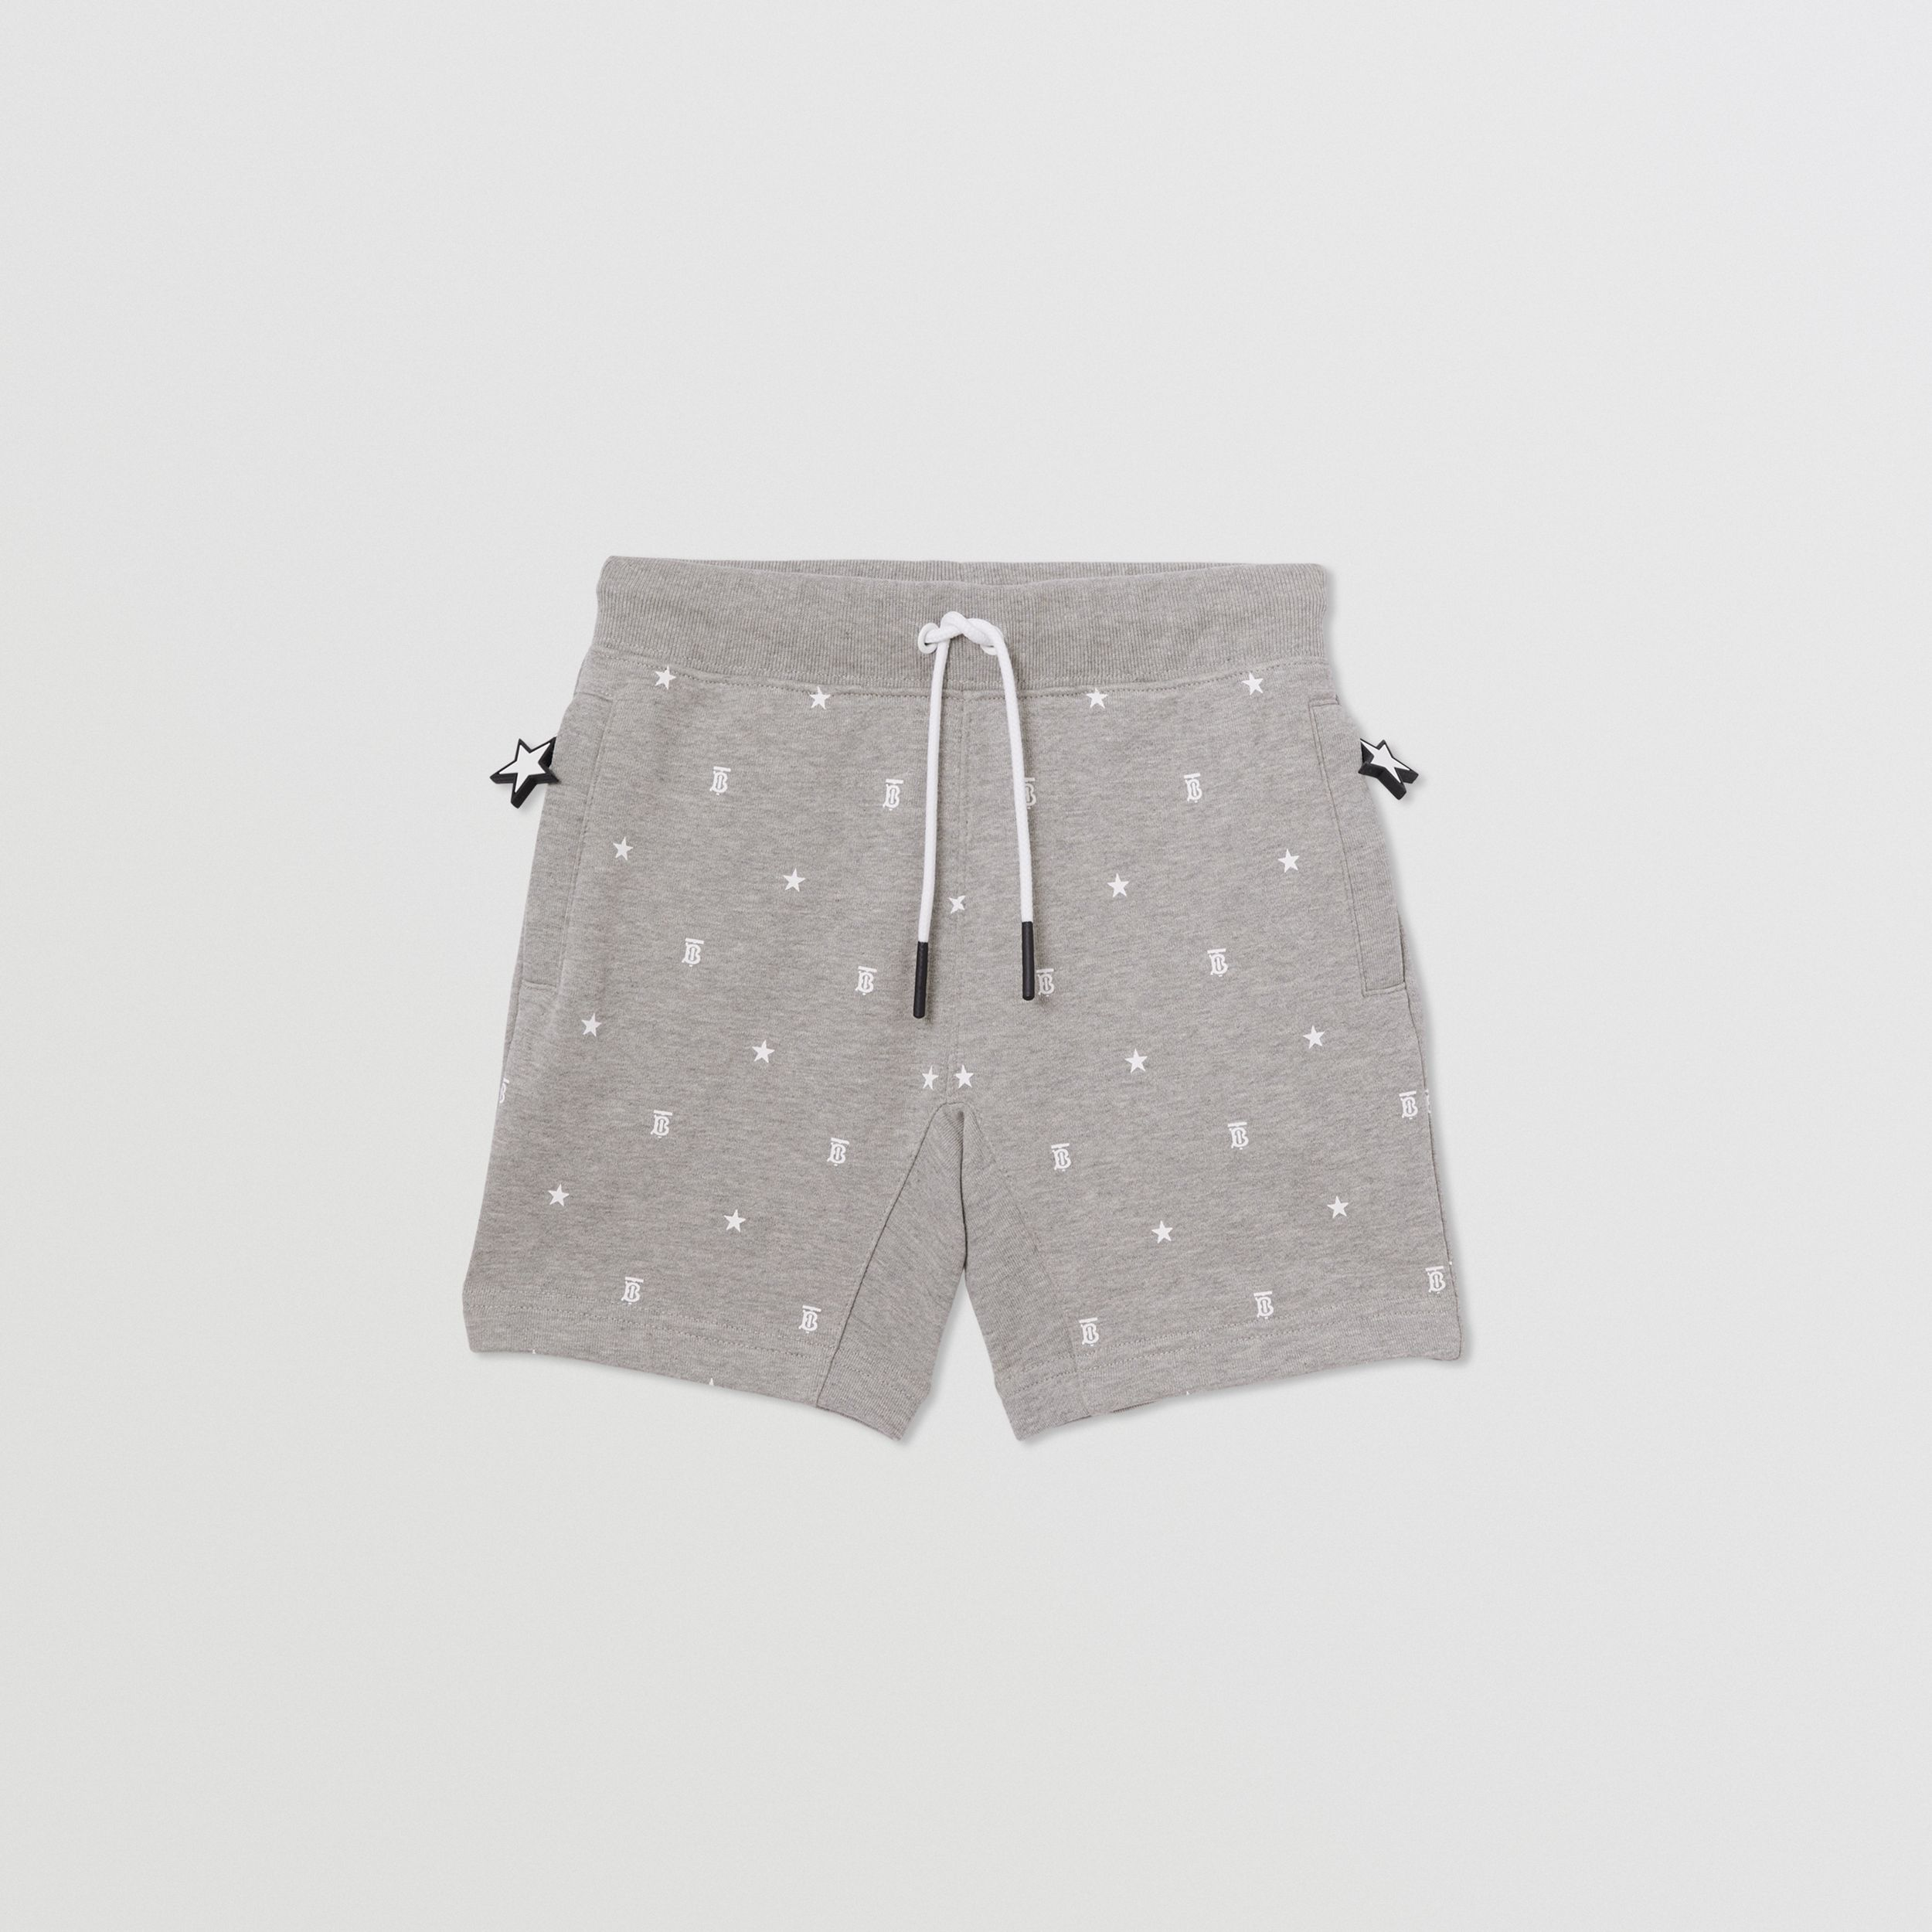 Star and Monogram Print Cotton Drawcord Shorts in Grey | Burberry United Kingdom - 1